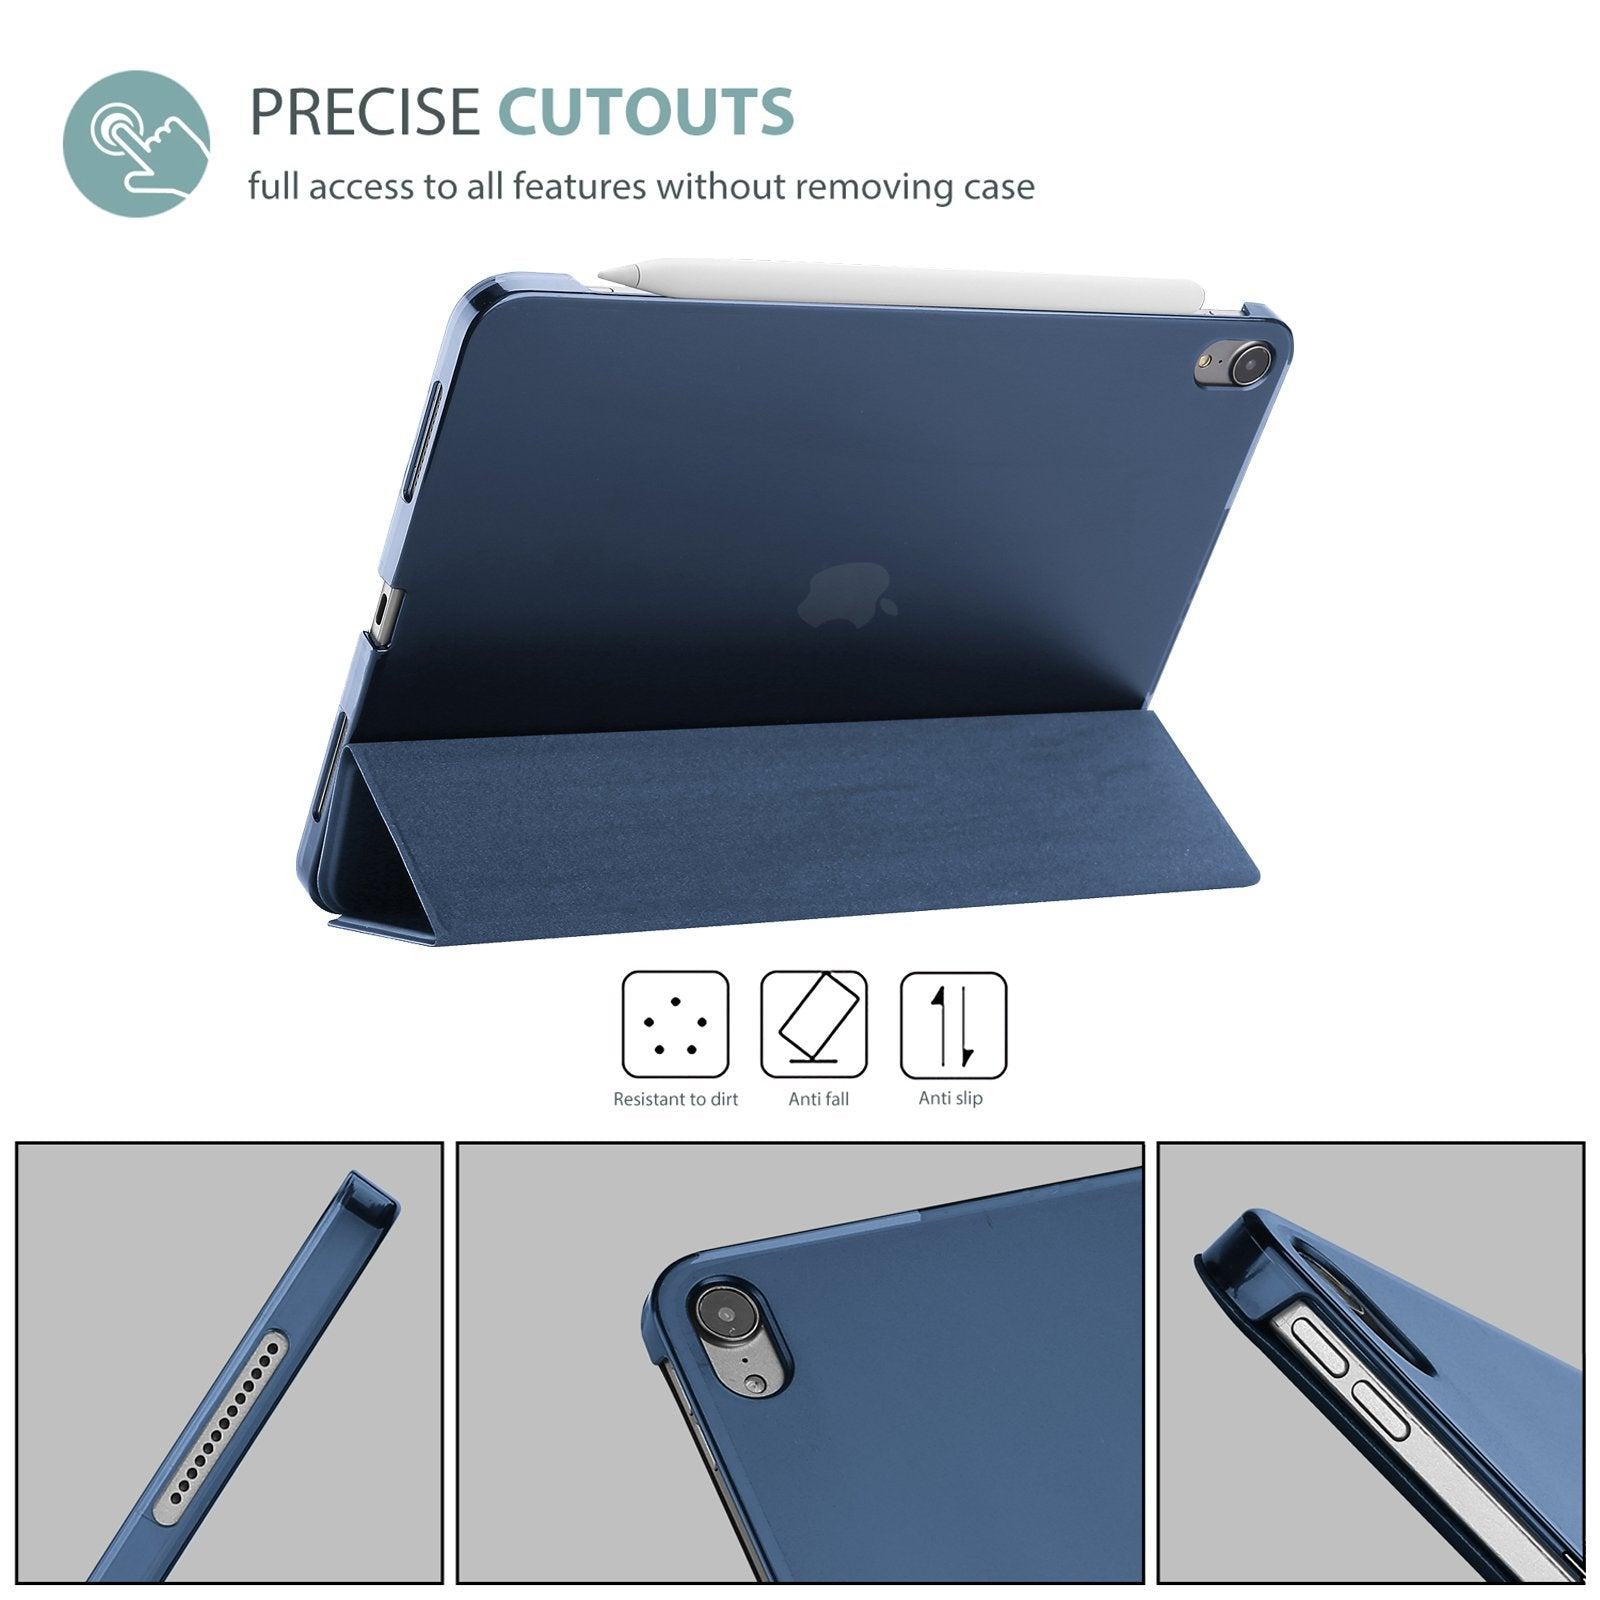 iPad Air 4 10.9 inch 2020 Generation Case with Screen Protector | ProCase